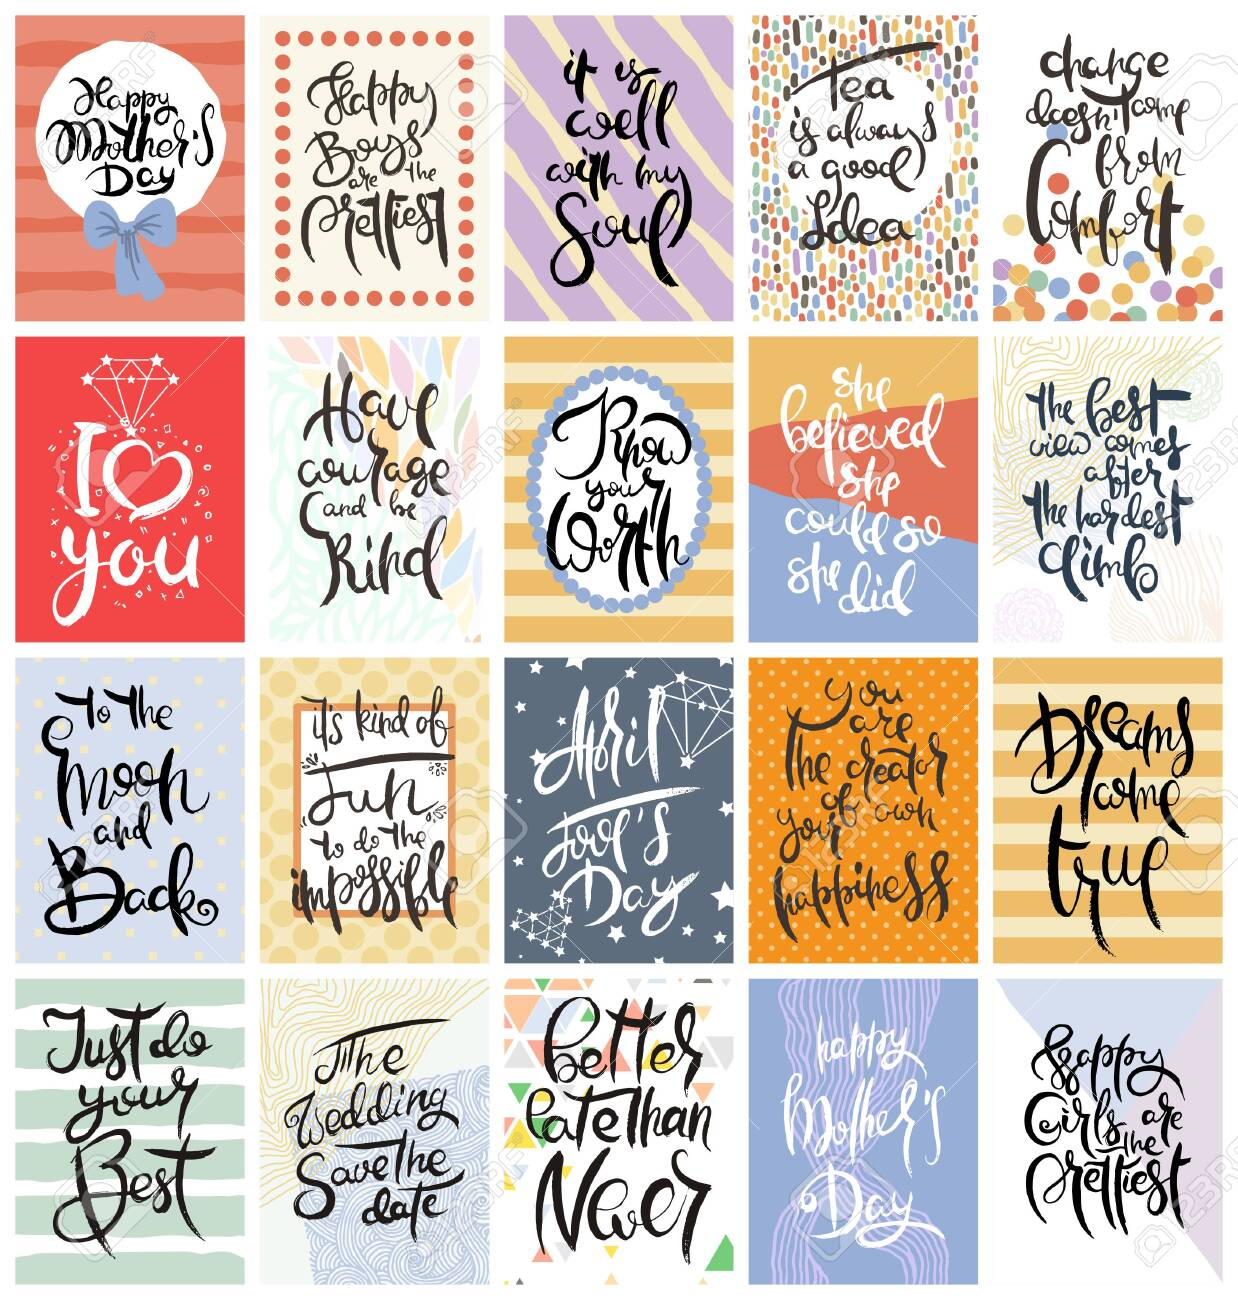 Hand drawn calligraphic card set. Vector illustration. Collection of flyers, brochures, templates. Design of scandinavian cards with lettering, patterns and ornaments. - 143567642